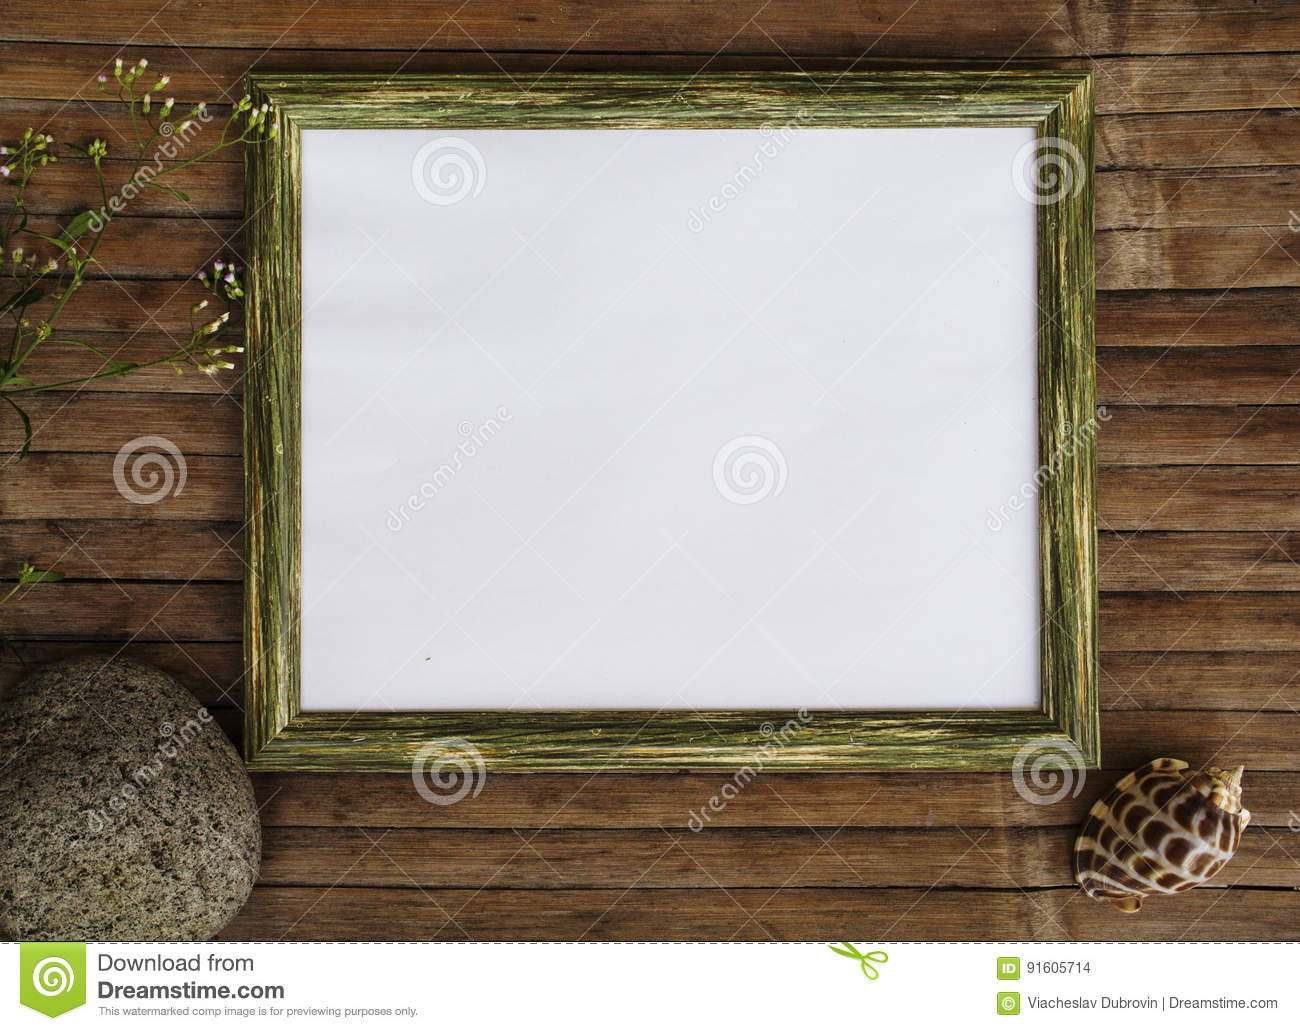 Horizontal Wooden Frame With White Page Photo Background. Shabby ...